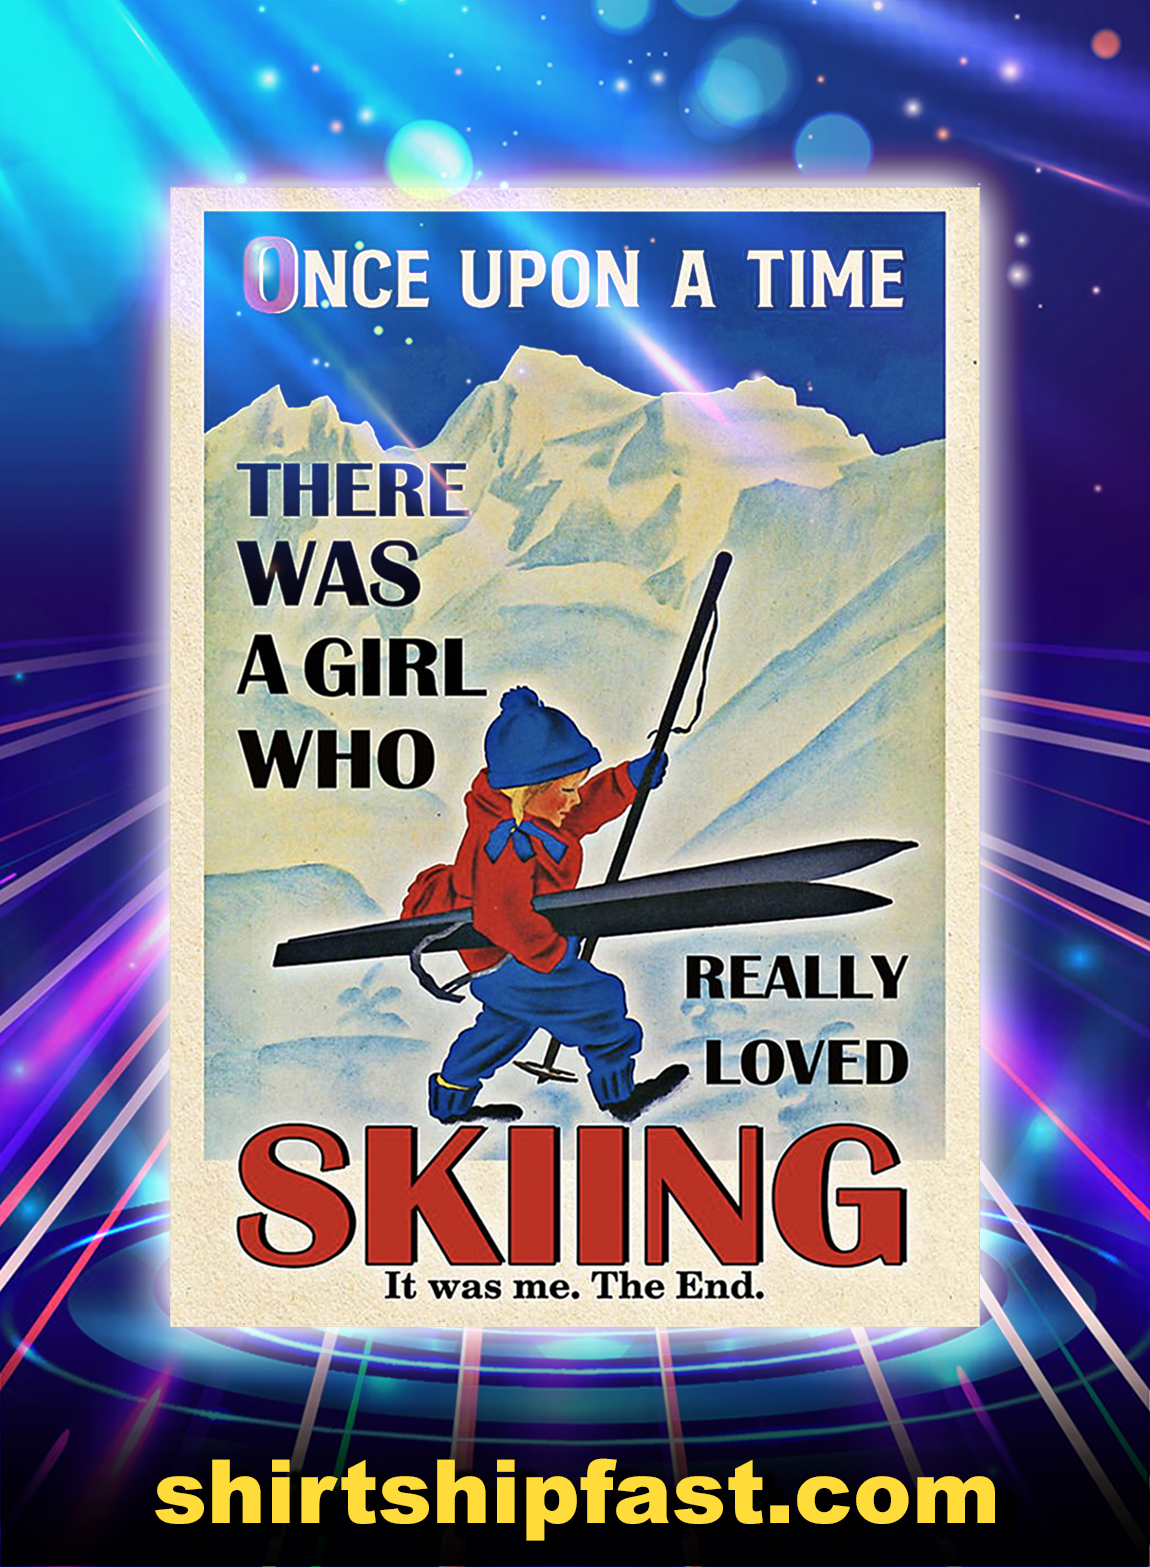 Once upon a time there was a girl who really loved SKIING poster - A3